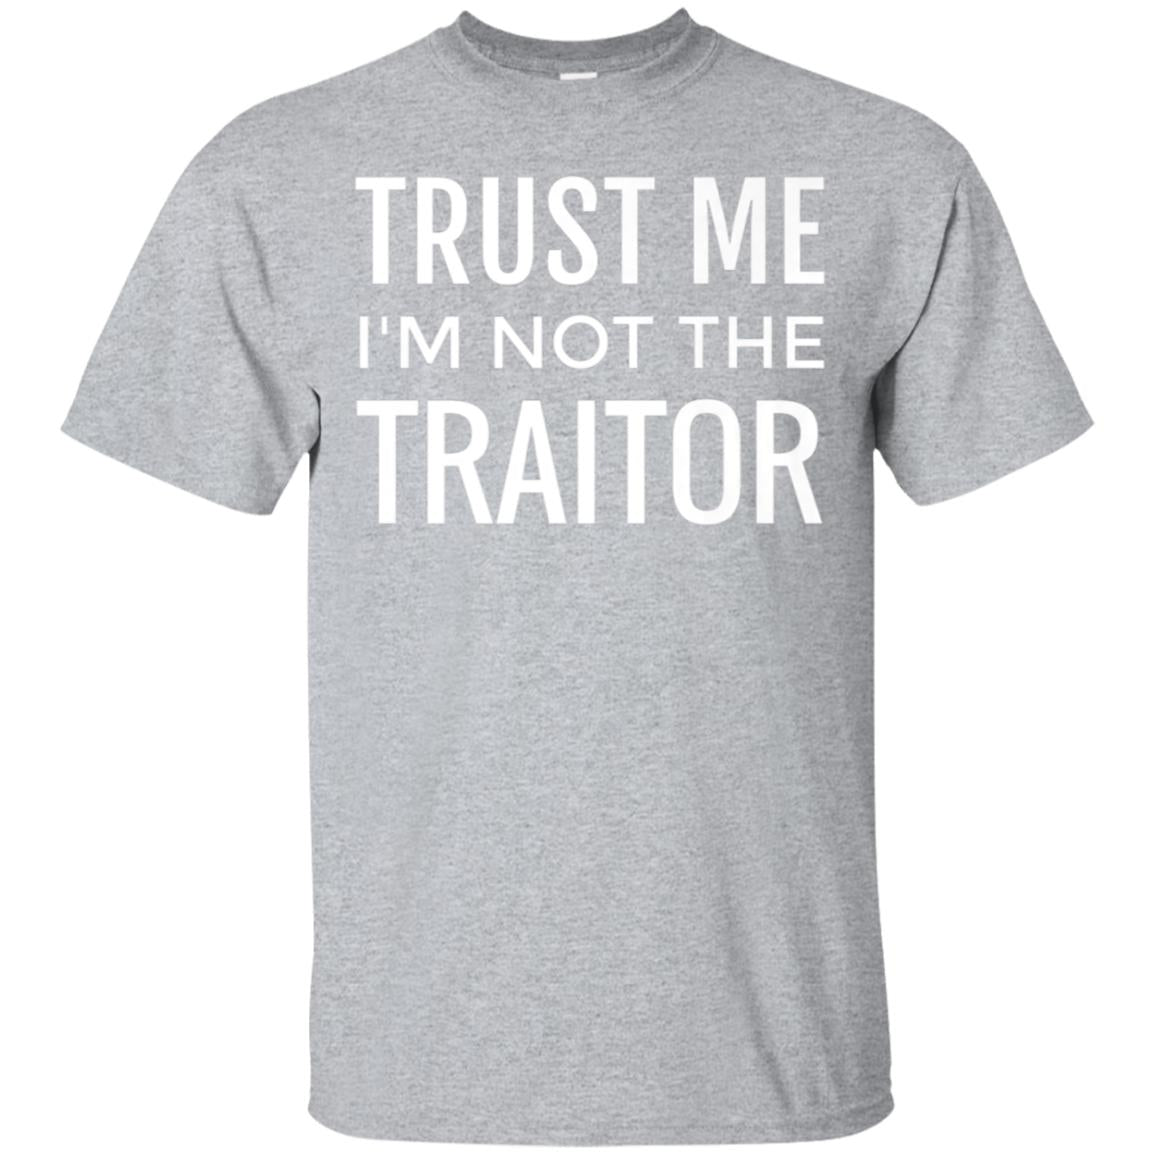 Board Game T Shirt - I'm Not the Traitor 99promocode